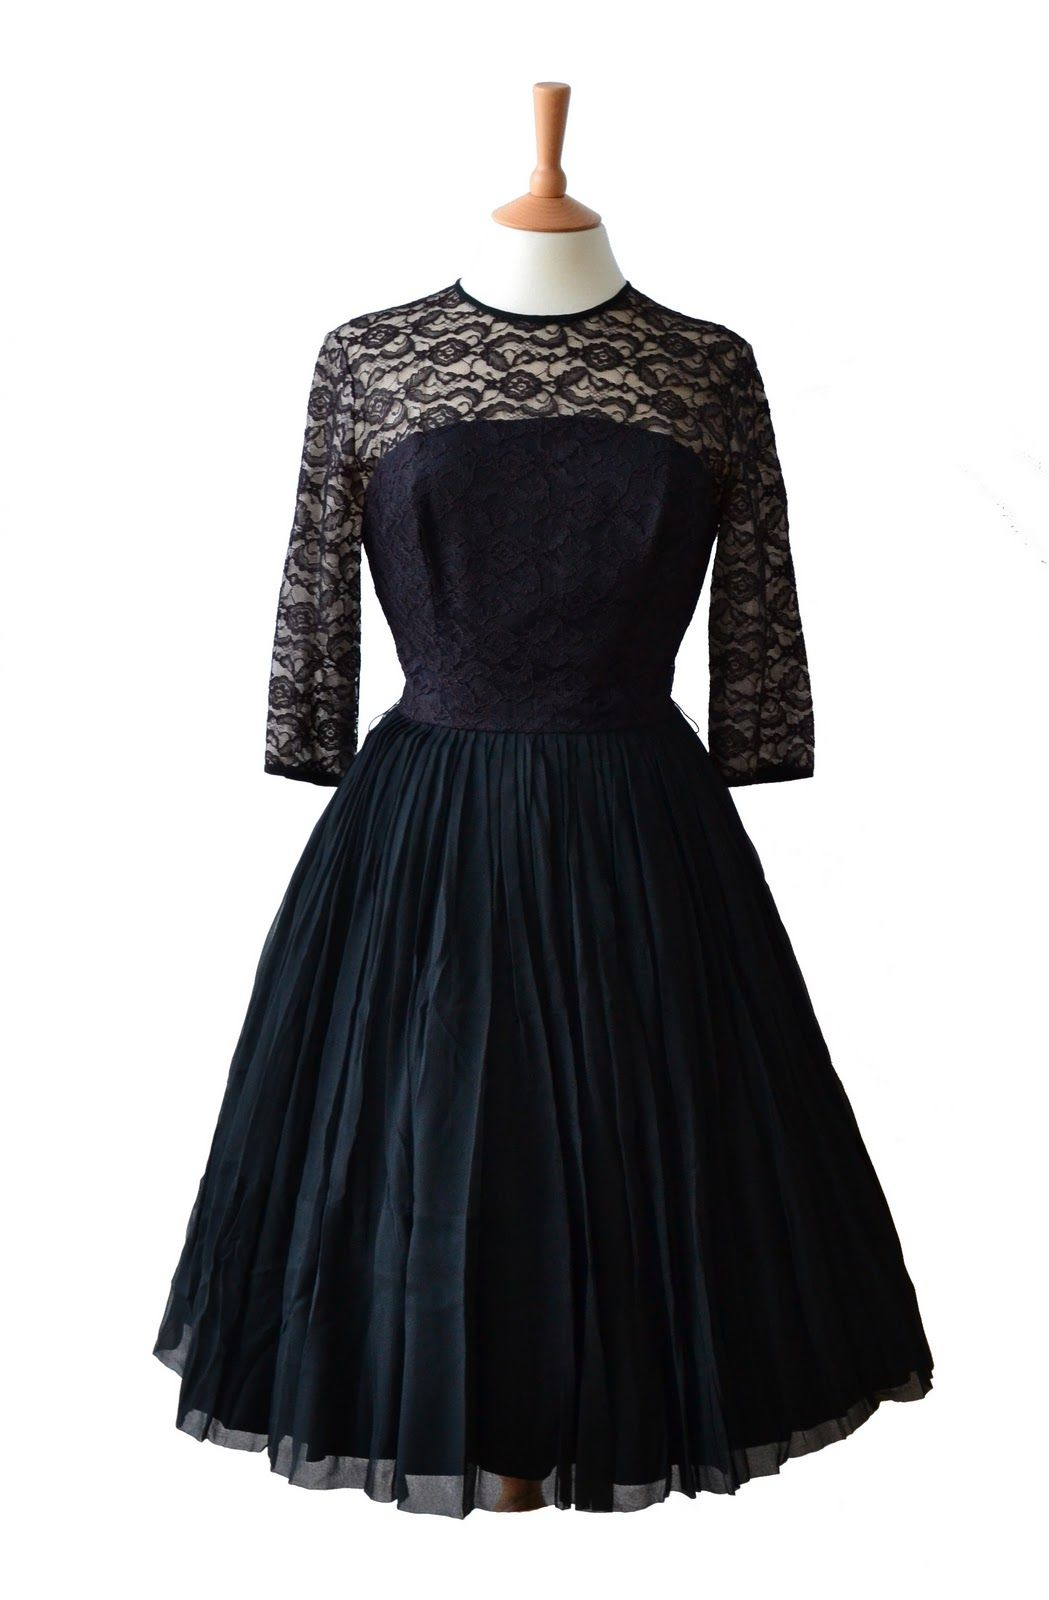 50s Style Cocktail Dress Black